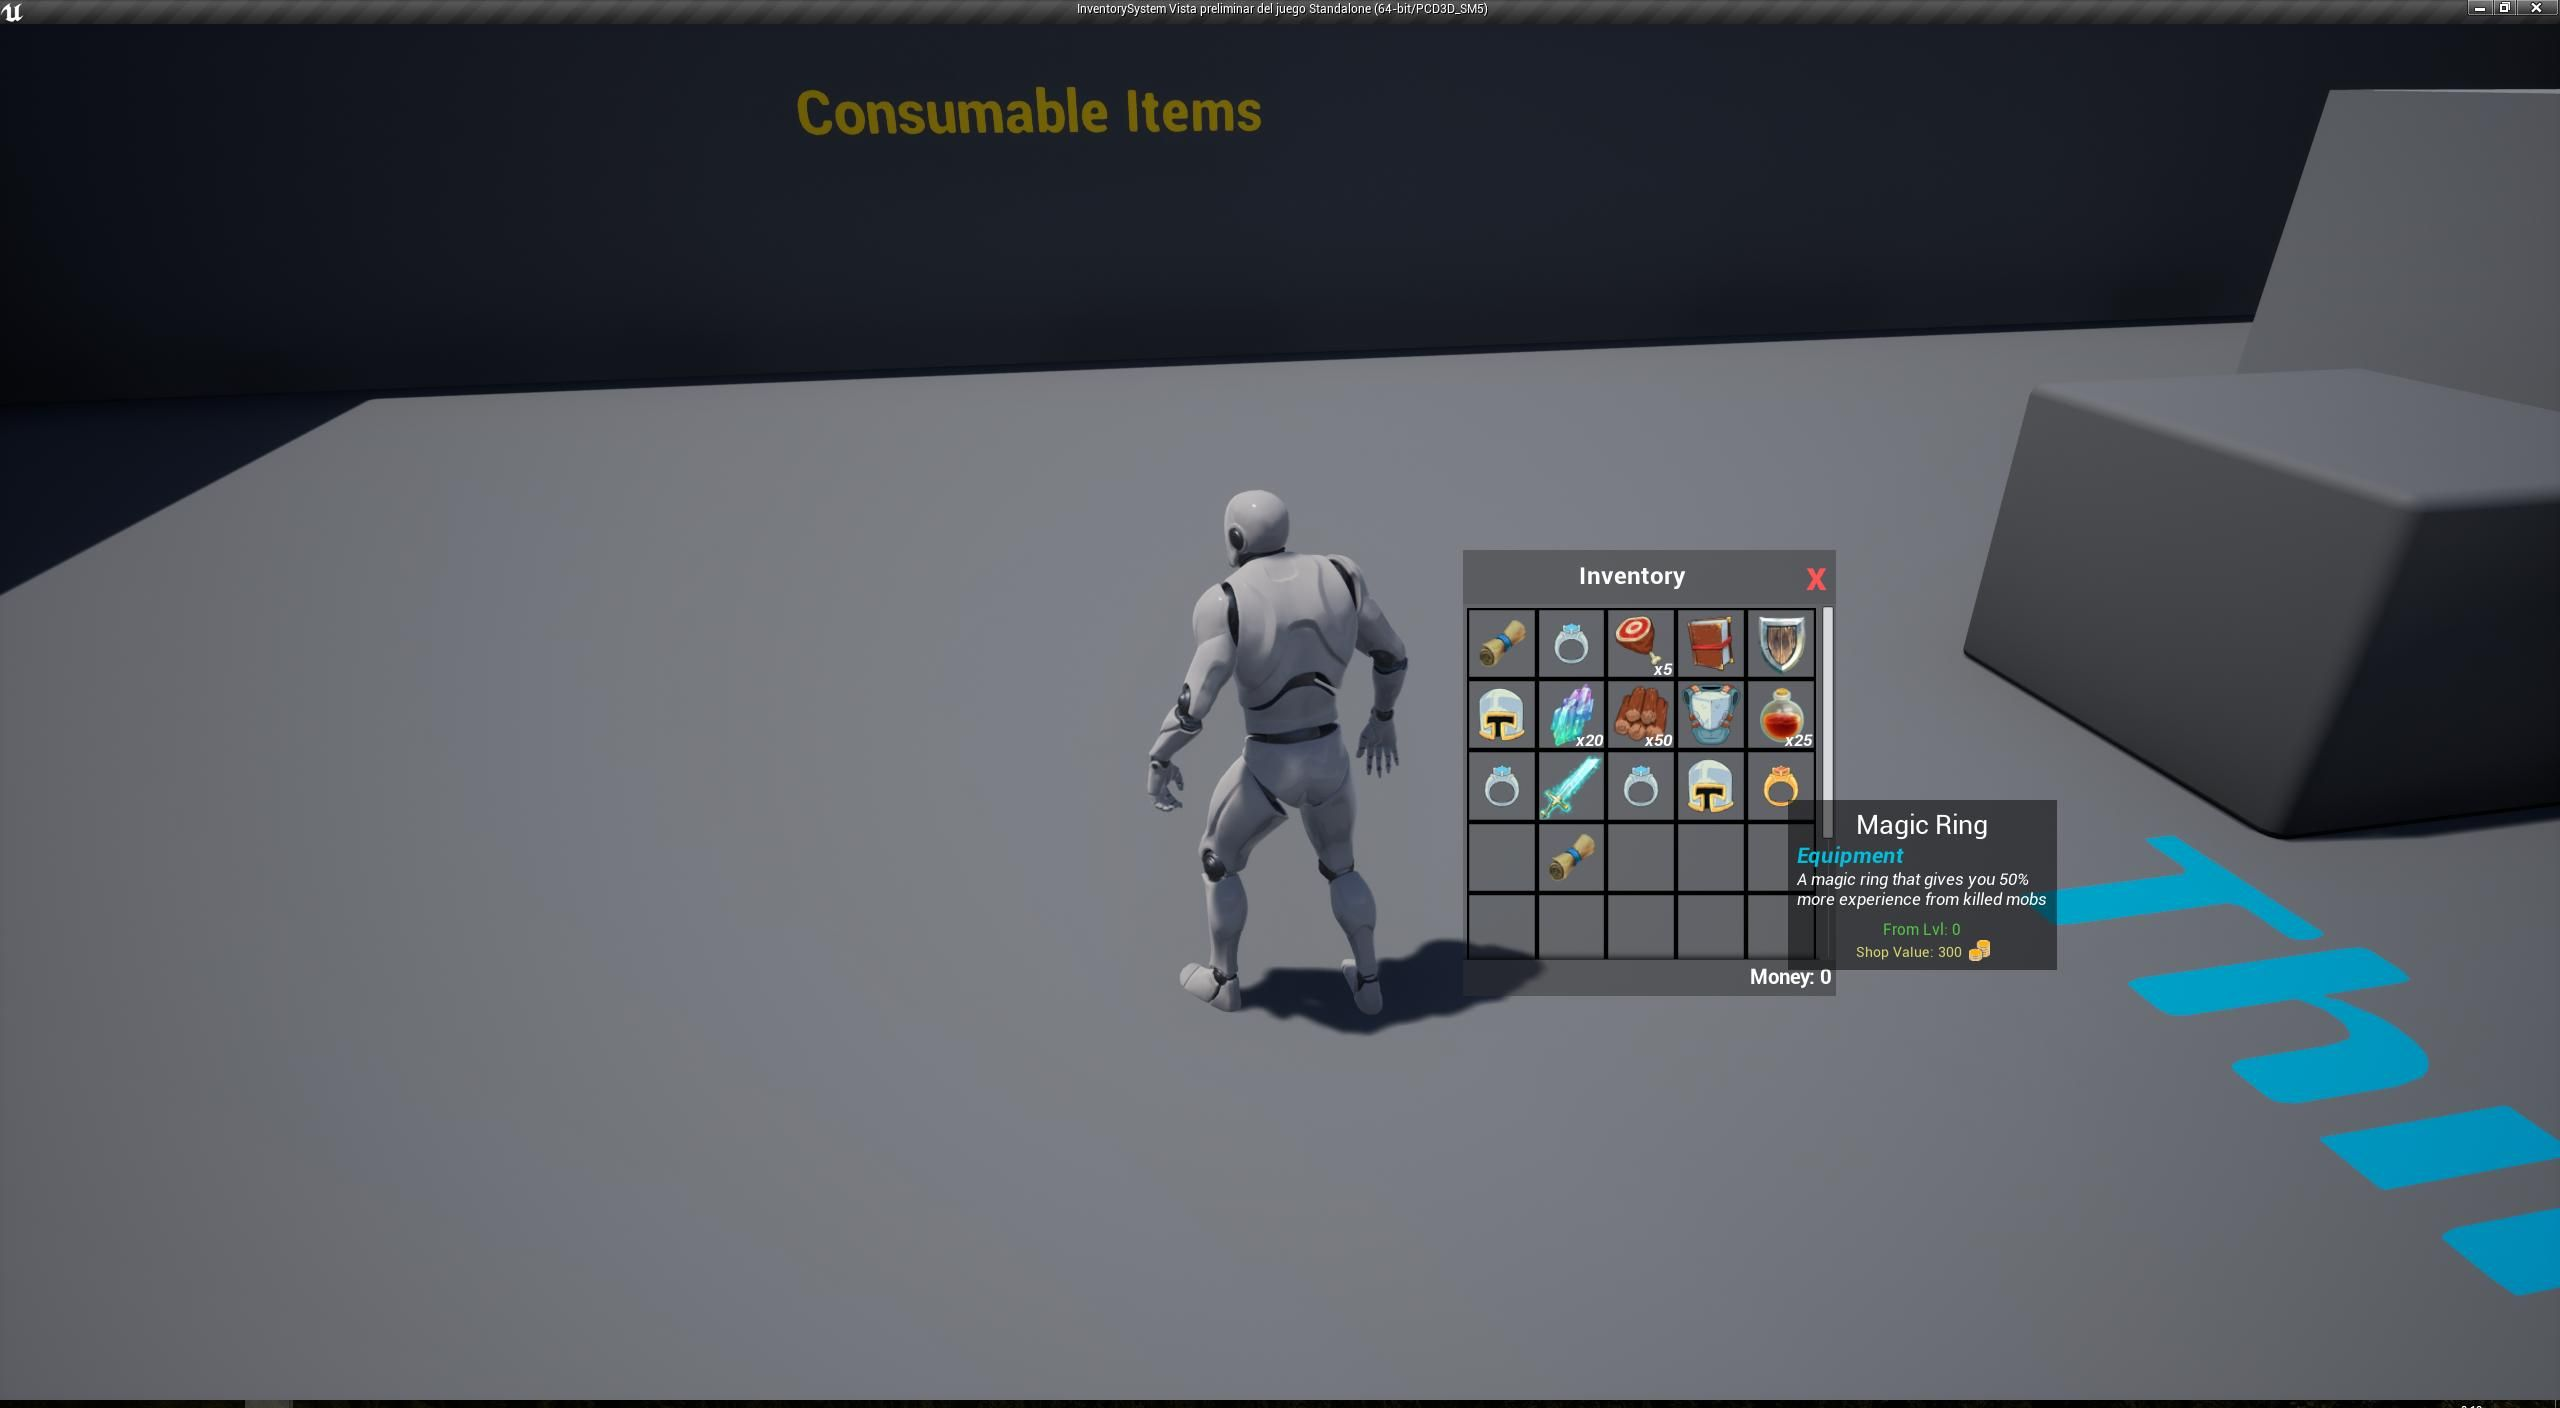 OpenRPG] : Free Unreal Engine 4 RPG Systems! - Unreal Engine Forums